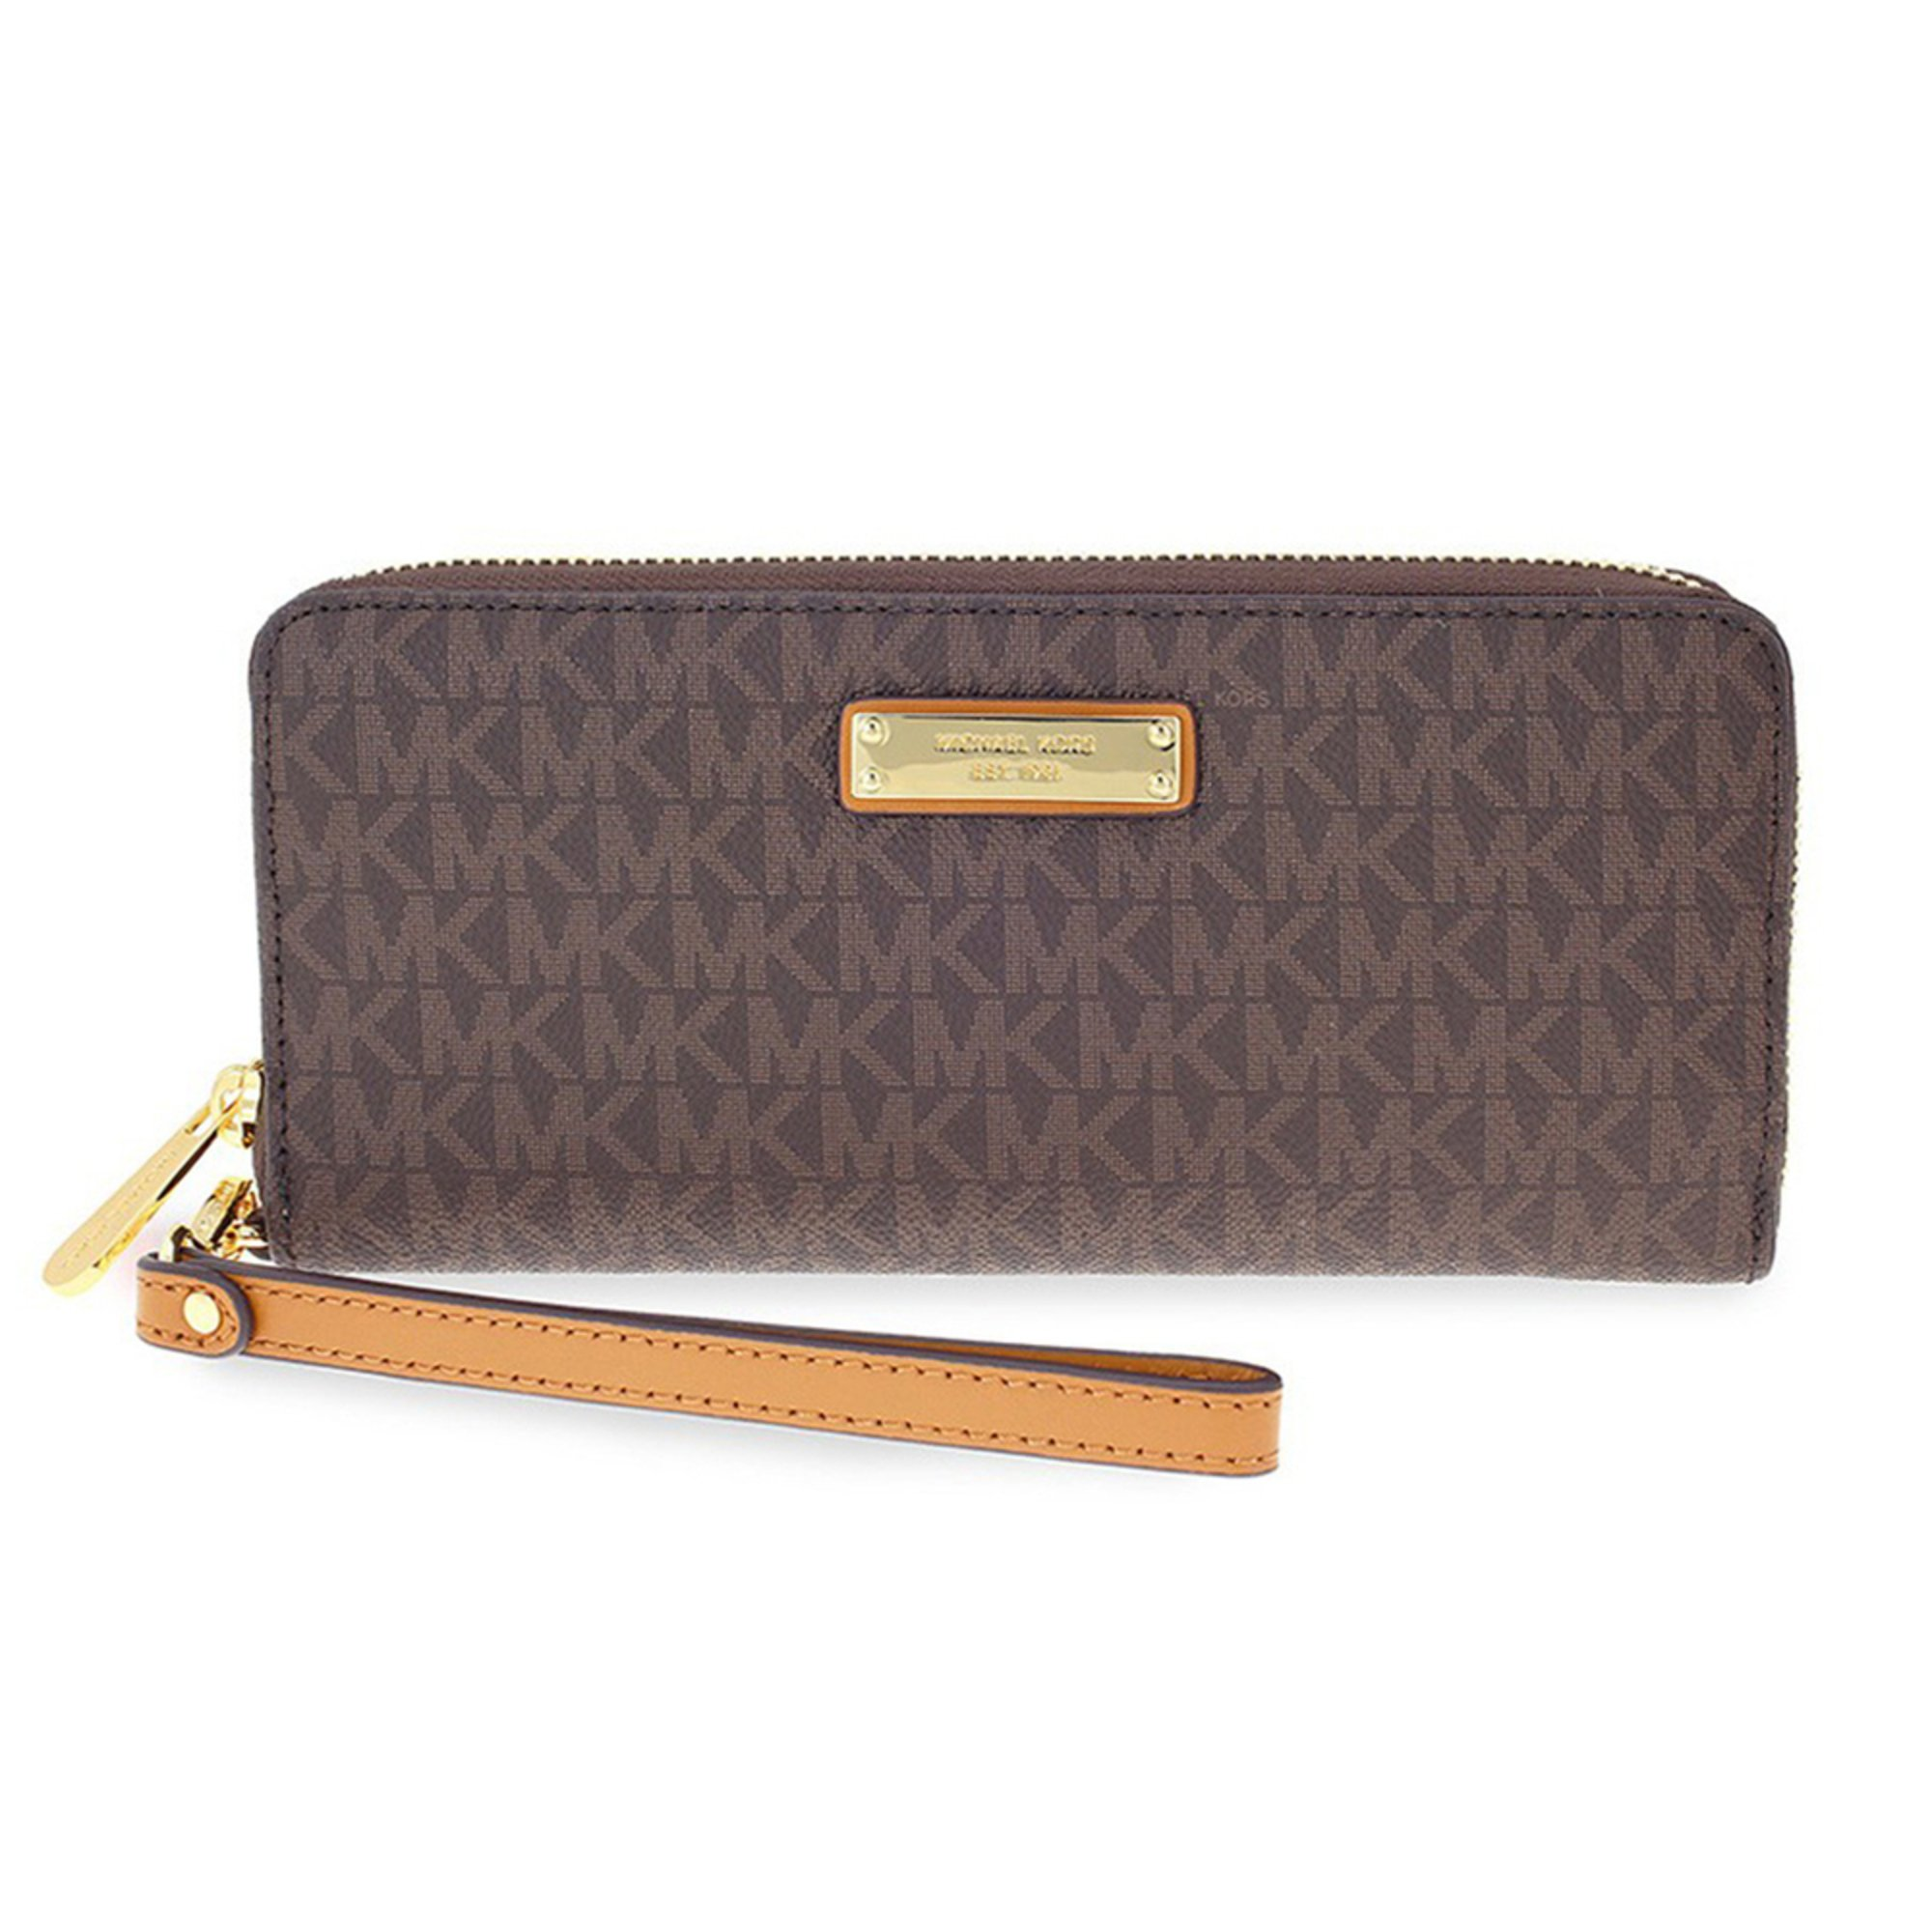 00b06420b57abc Michael Kors Jet Set Item Travel Continental Brown | Wristlets ...